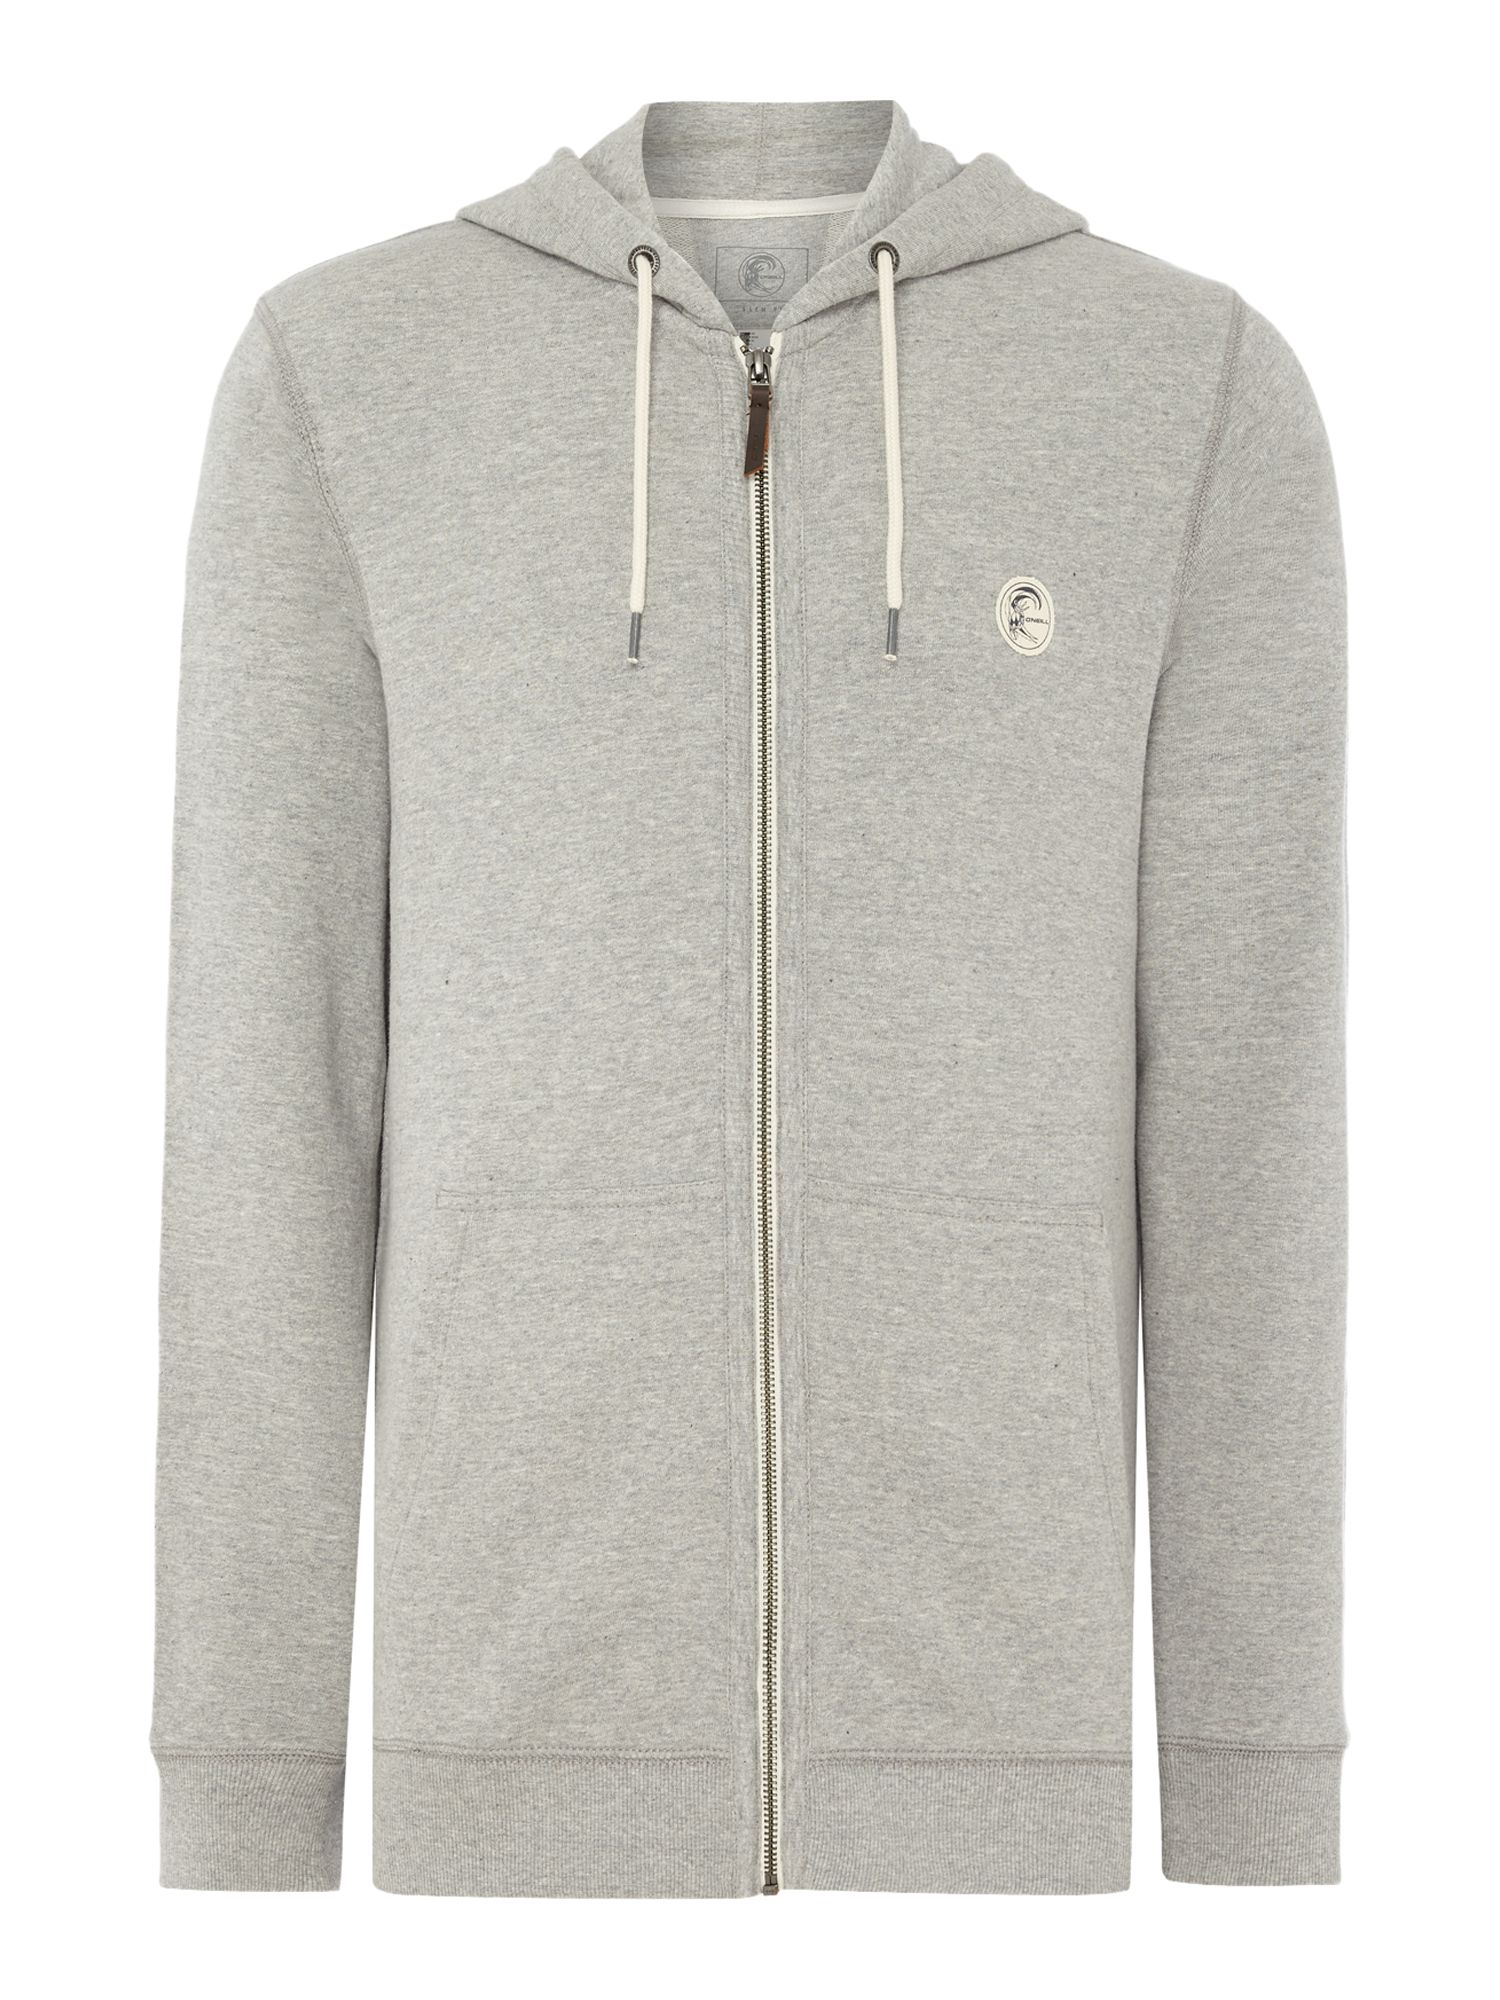 Men's O'Neill Originals full zip hoodie, Grey